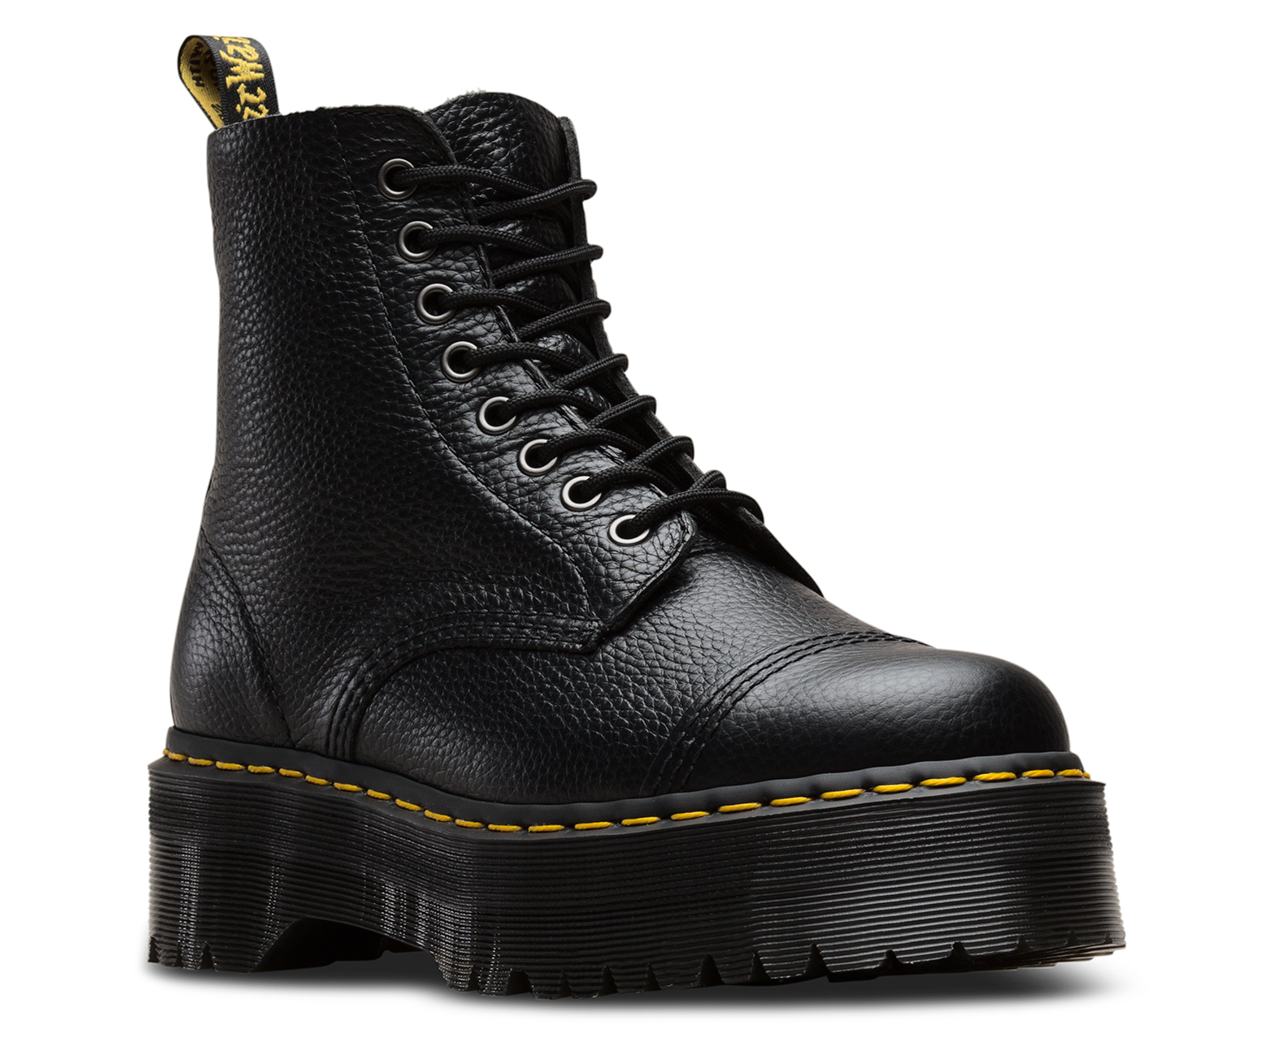 Sinclair Platform Sole Dr Martens Official Site